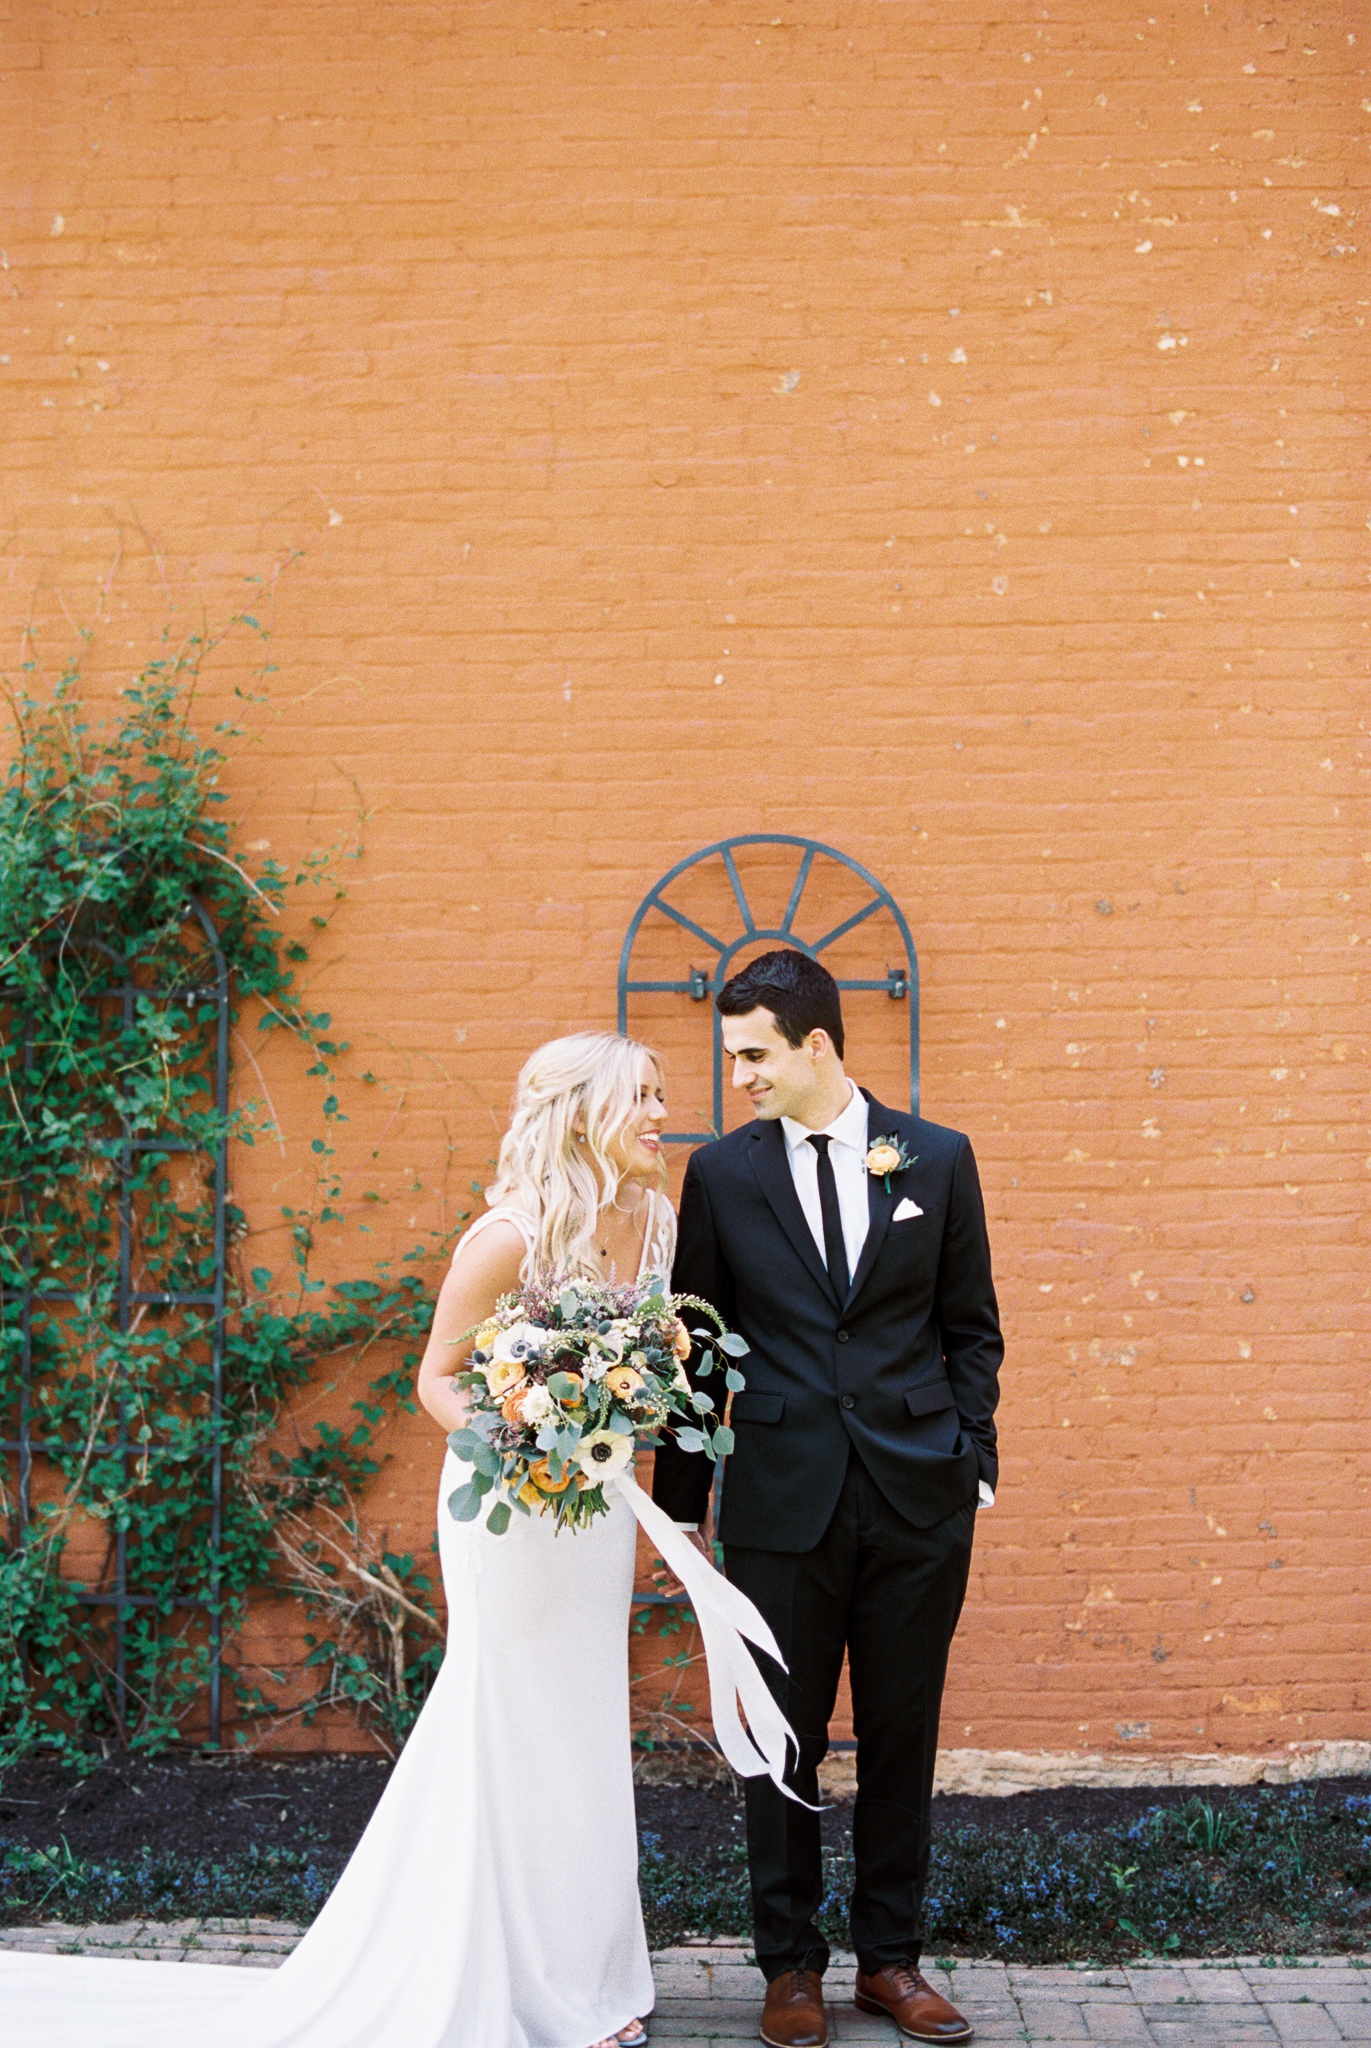 Dayton_CIncinnati_Film_Wedding_Portrait_Photographer-27.jpg